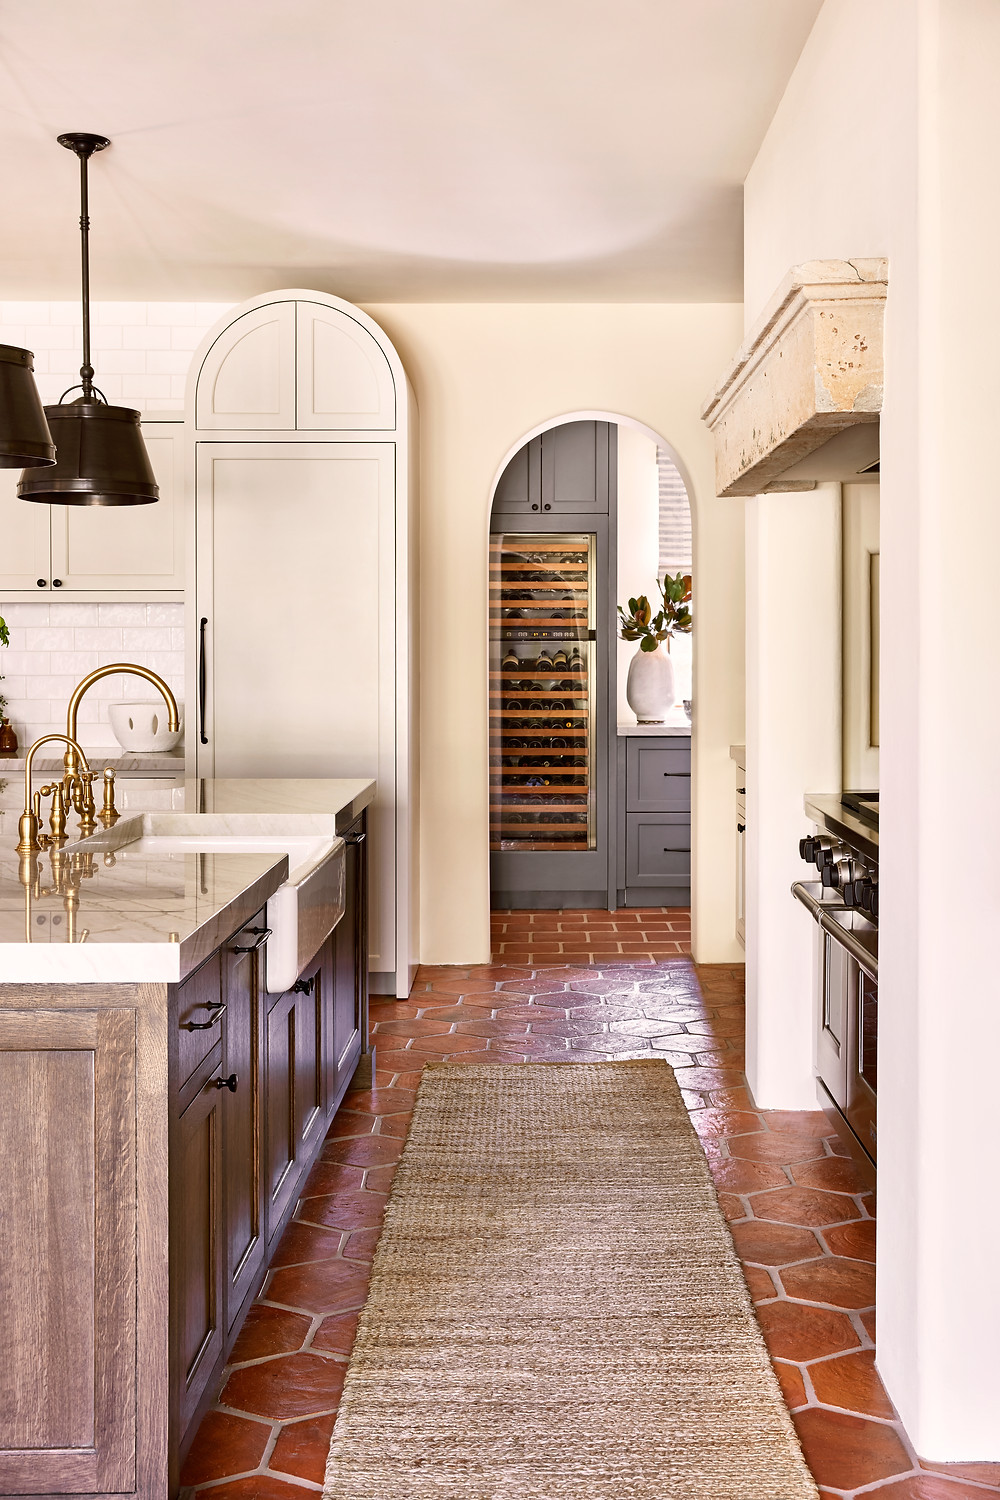 Spanish-style kitchen with wood island